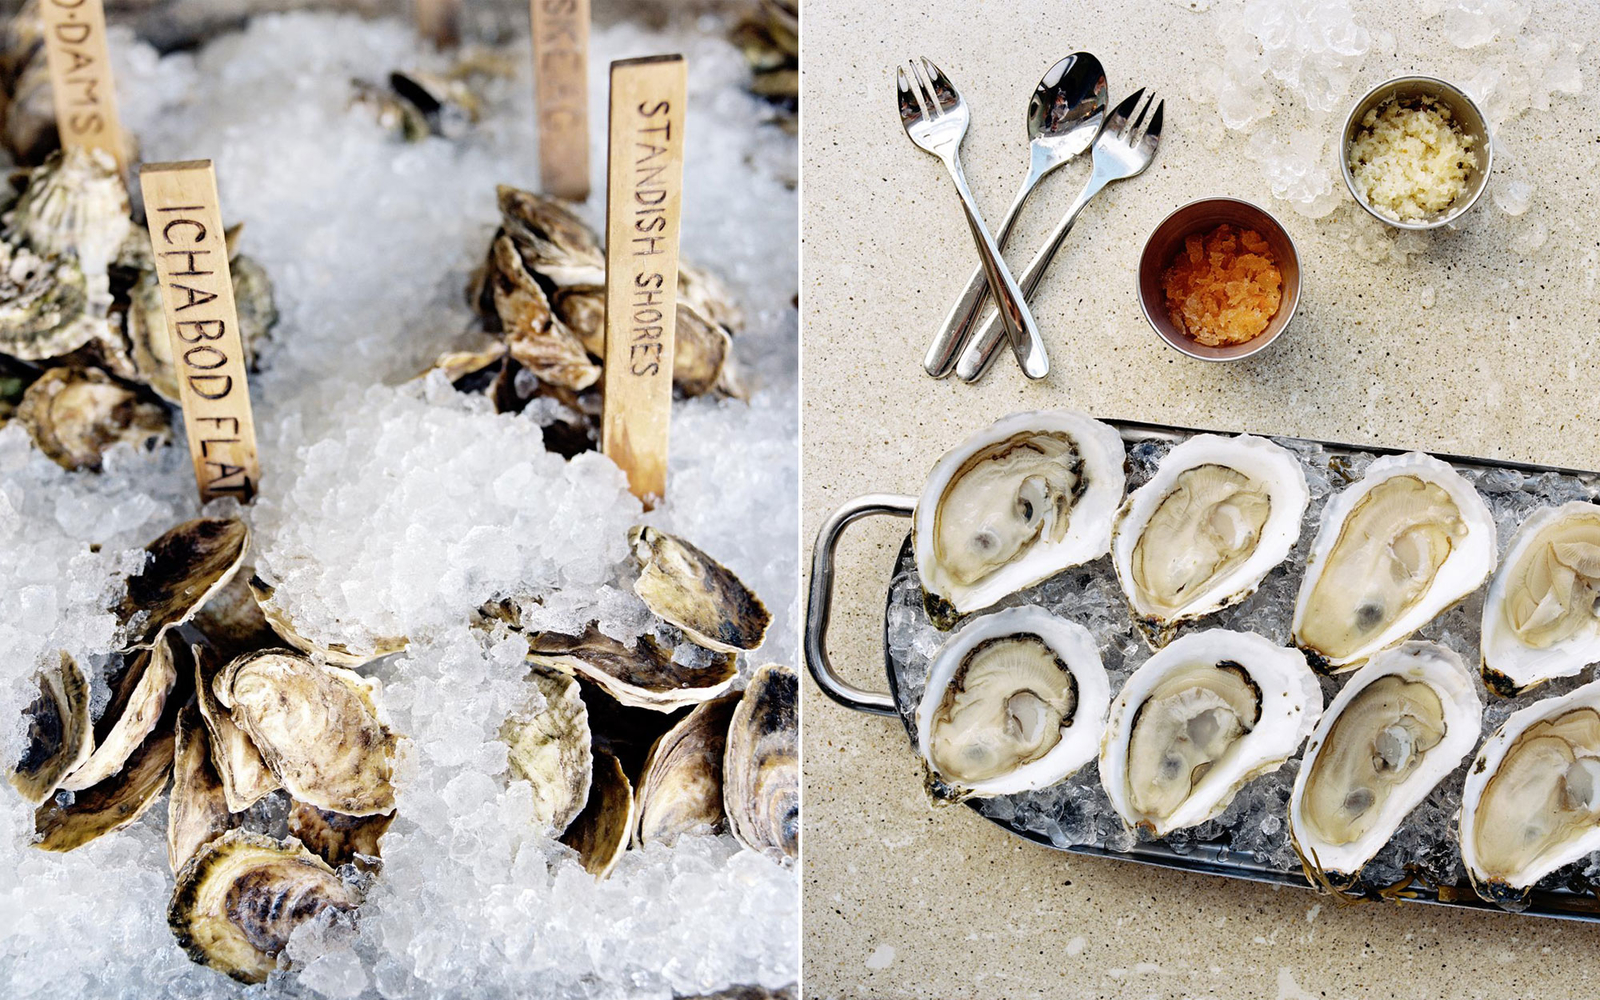 7 p.m.: Dinner at Eventide Oyster Co., Portland